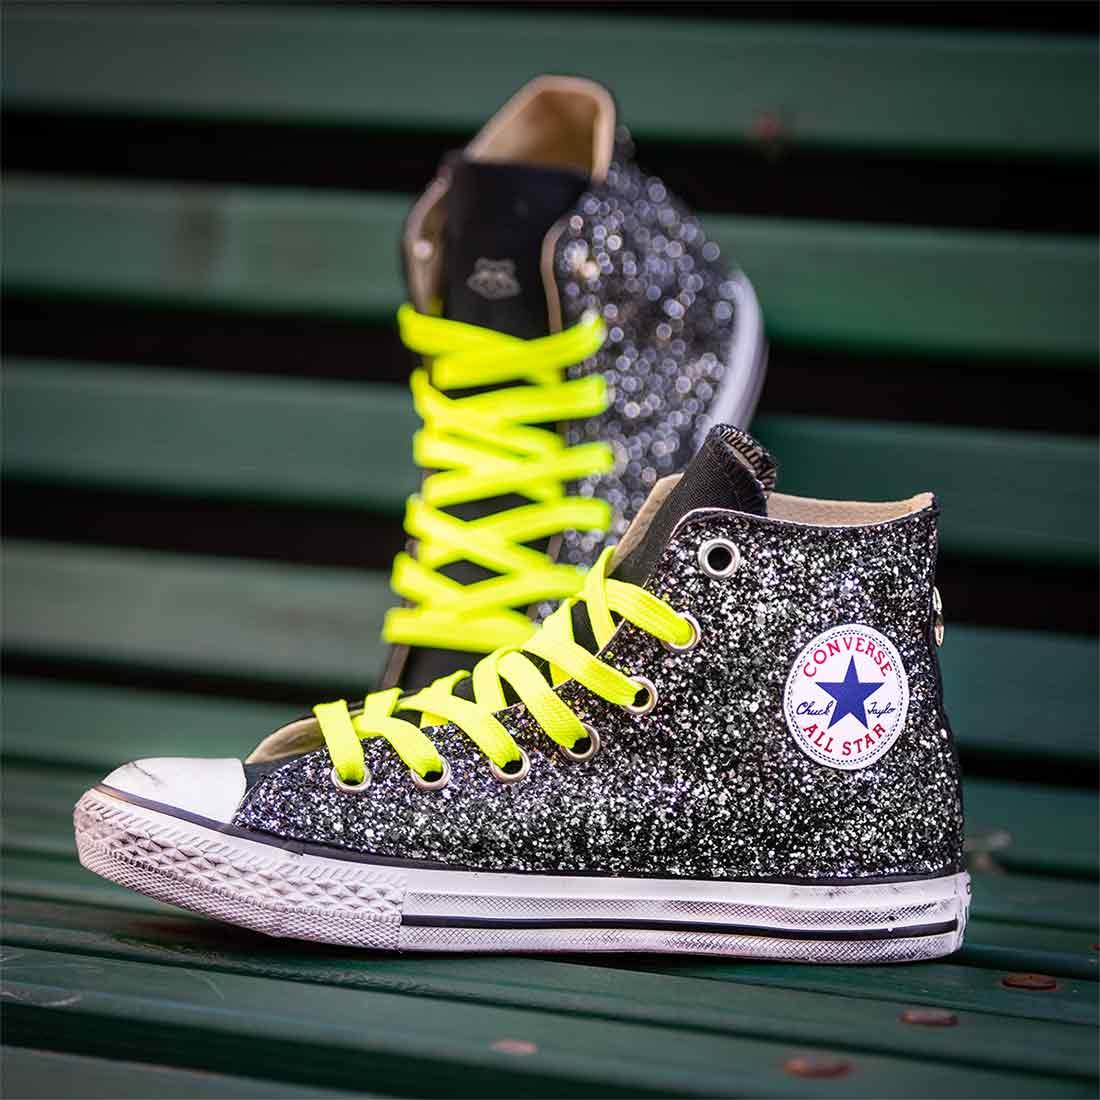 converse all star alte glitter nero borchie